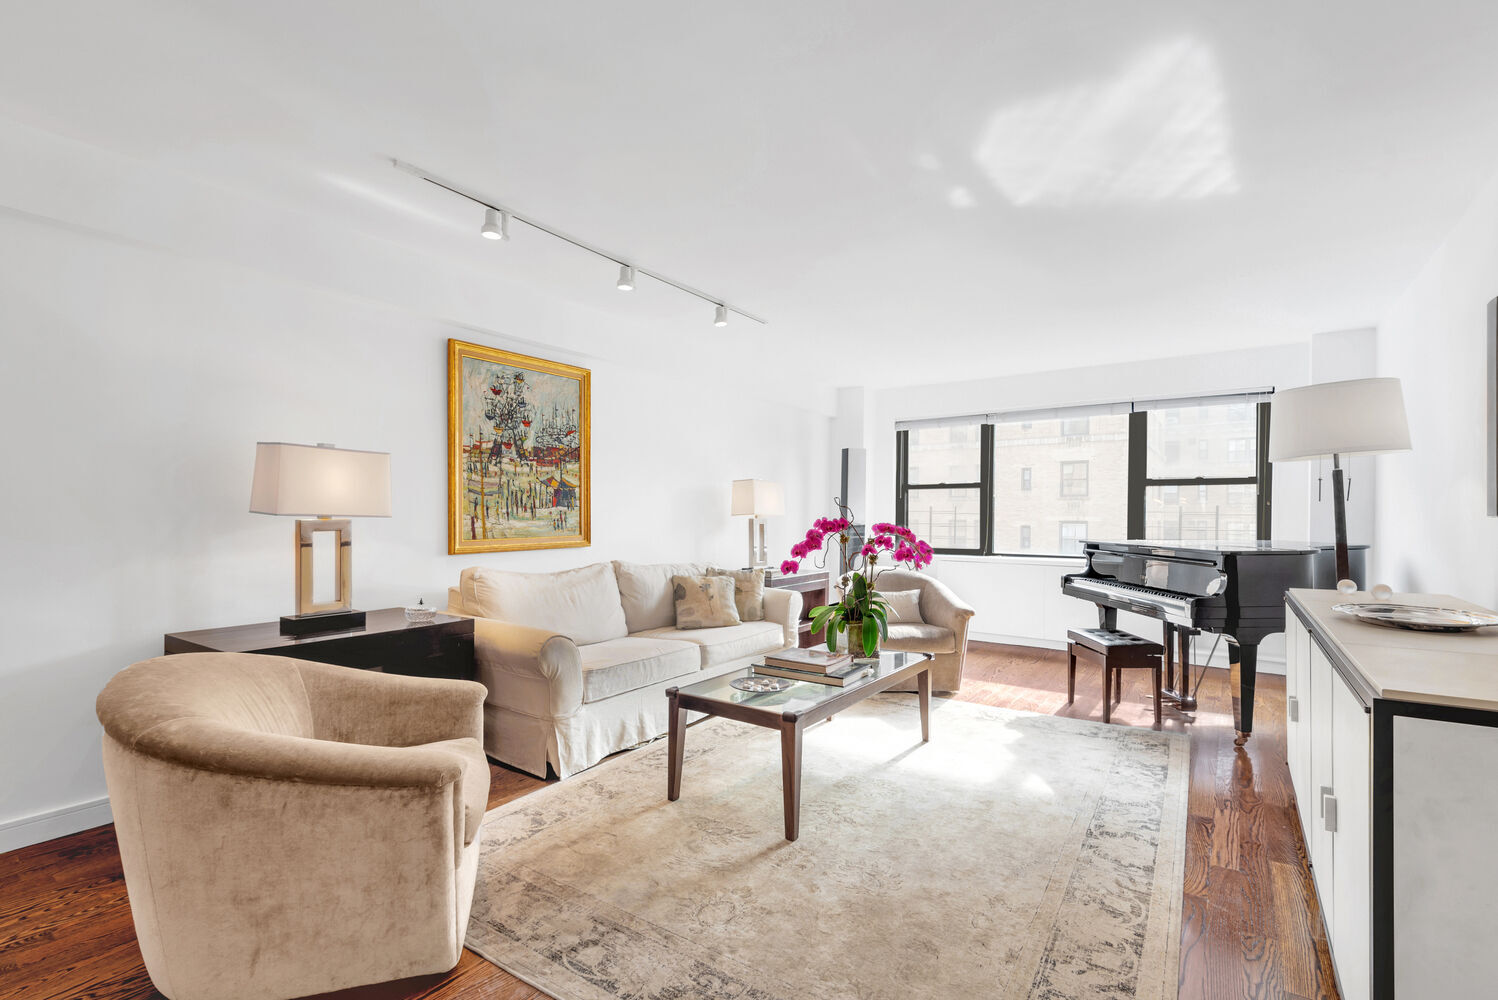 Apartment for sale at 11 East 86th Street, Apt 14-C